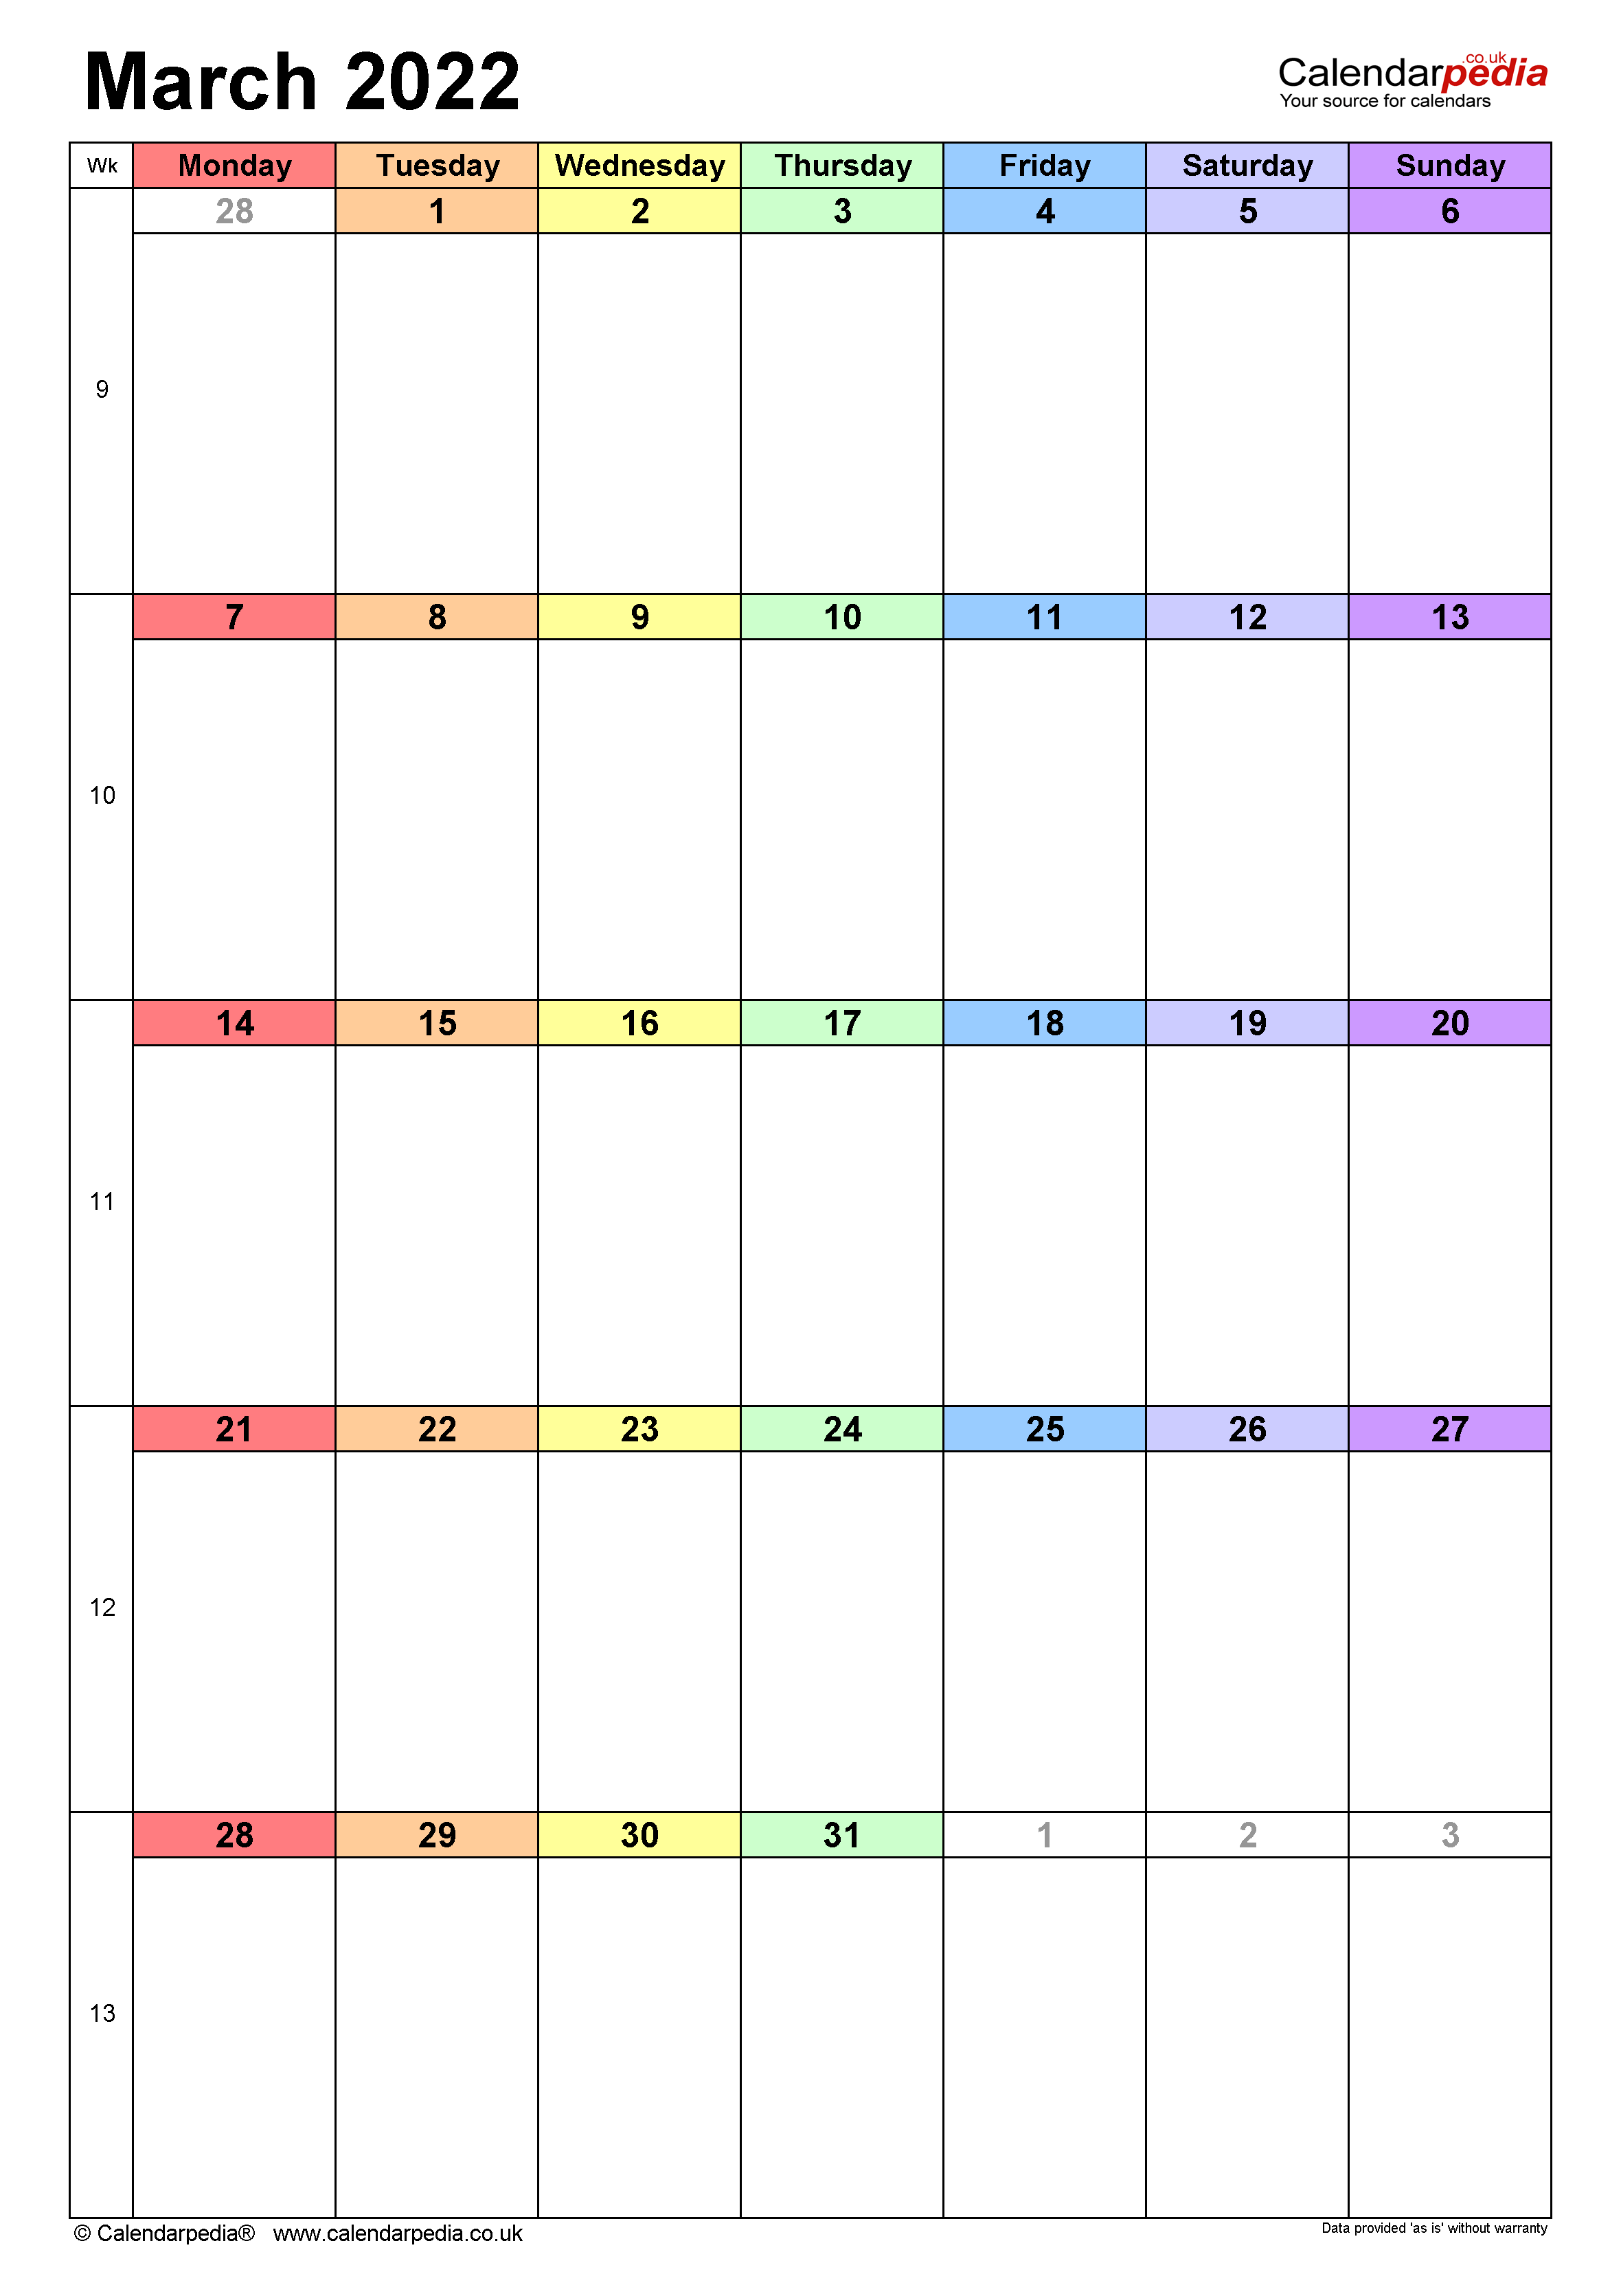 Calendar March 2022 Uk With Excel, Word And Pdf Templates With Calendar For March 2022